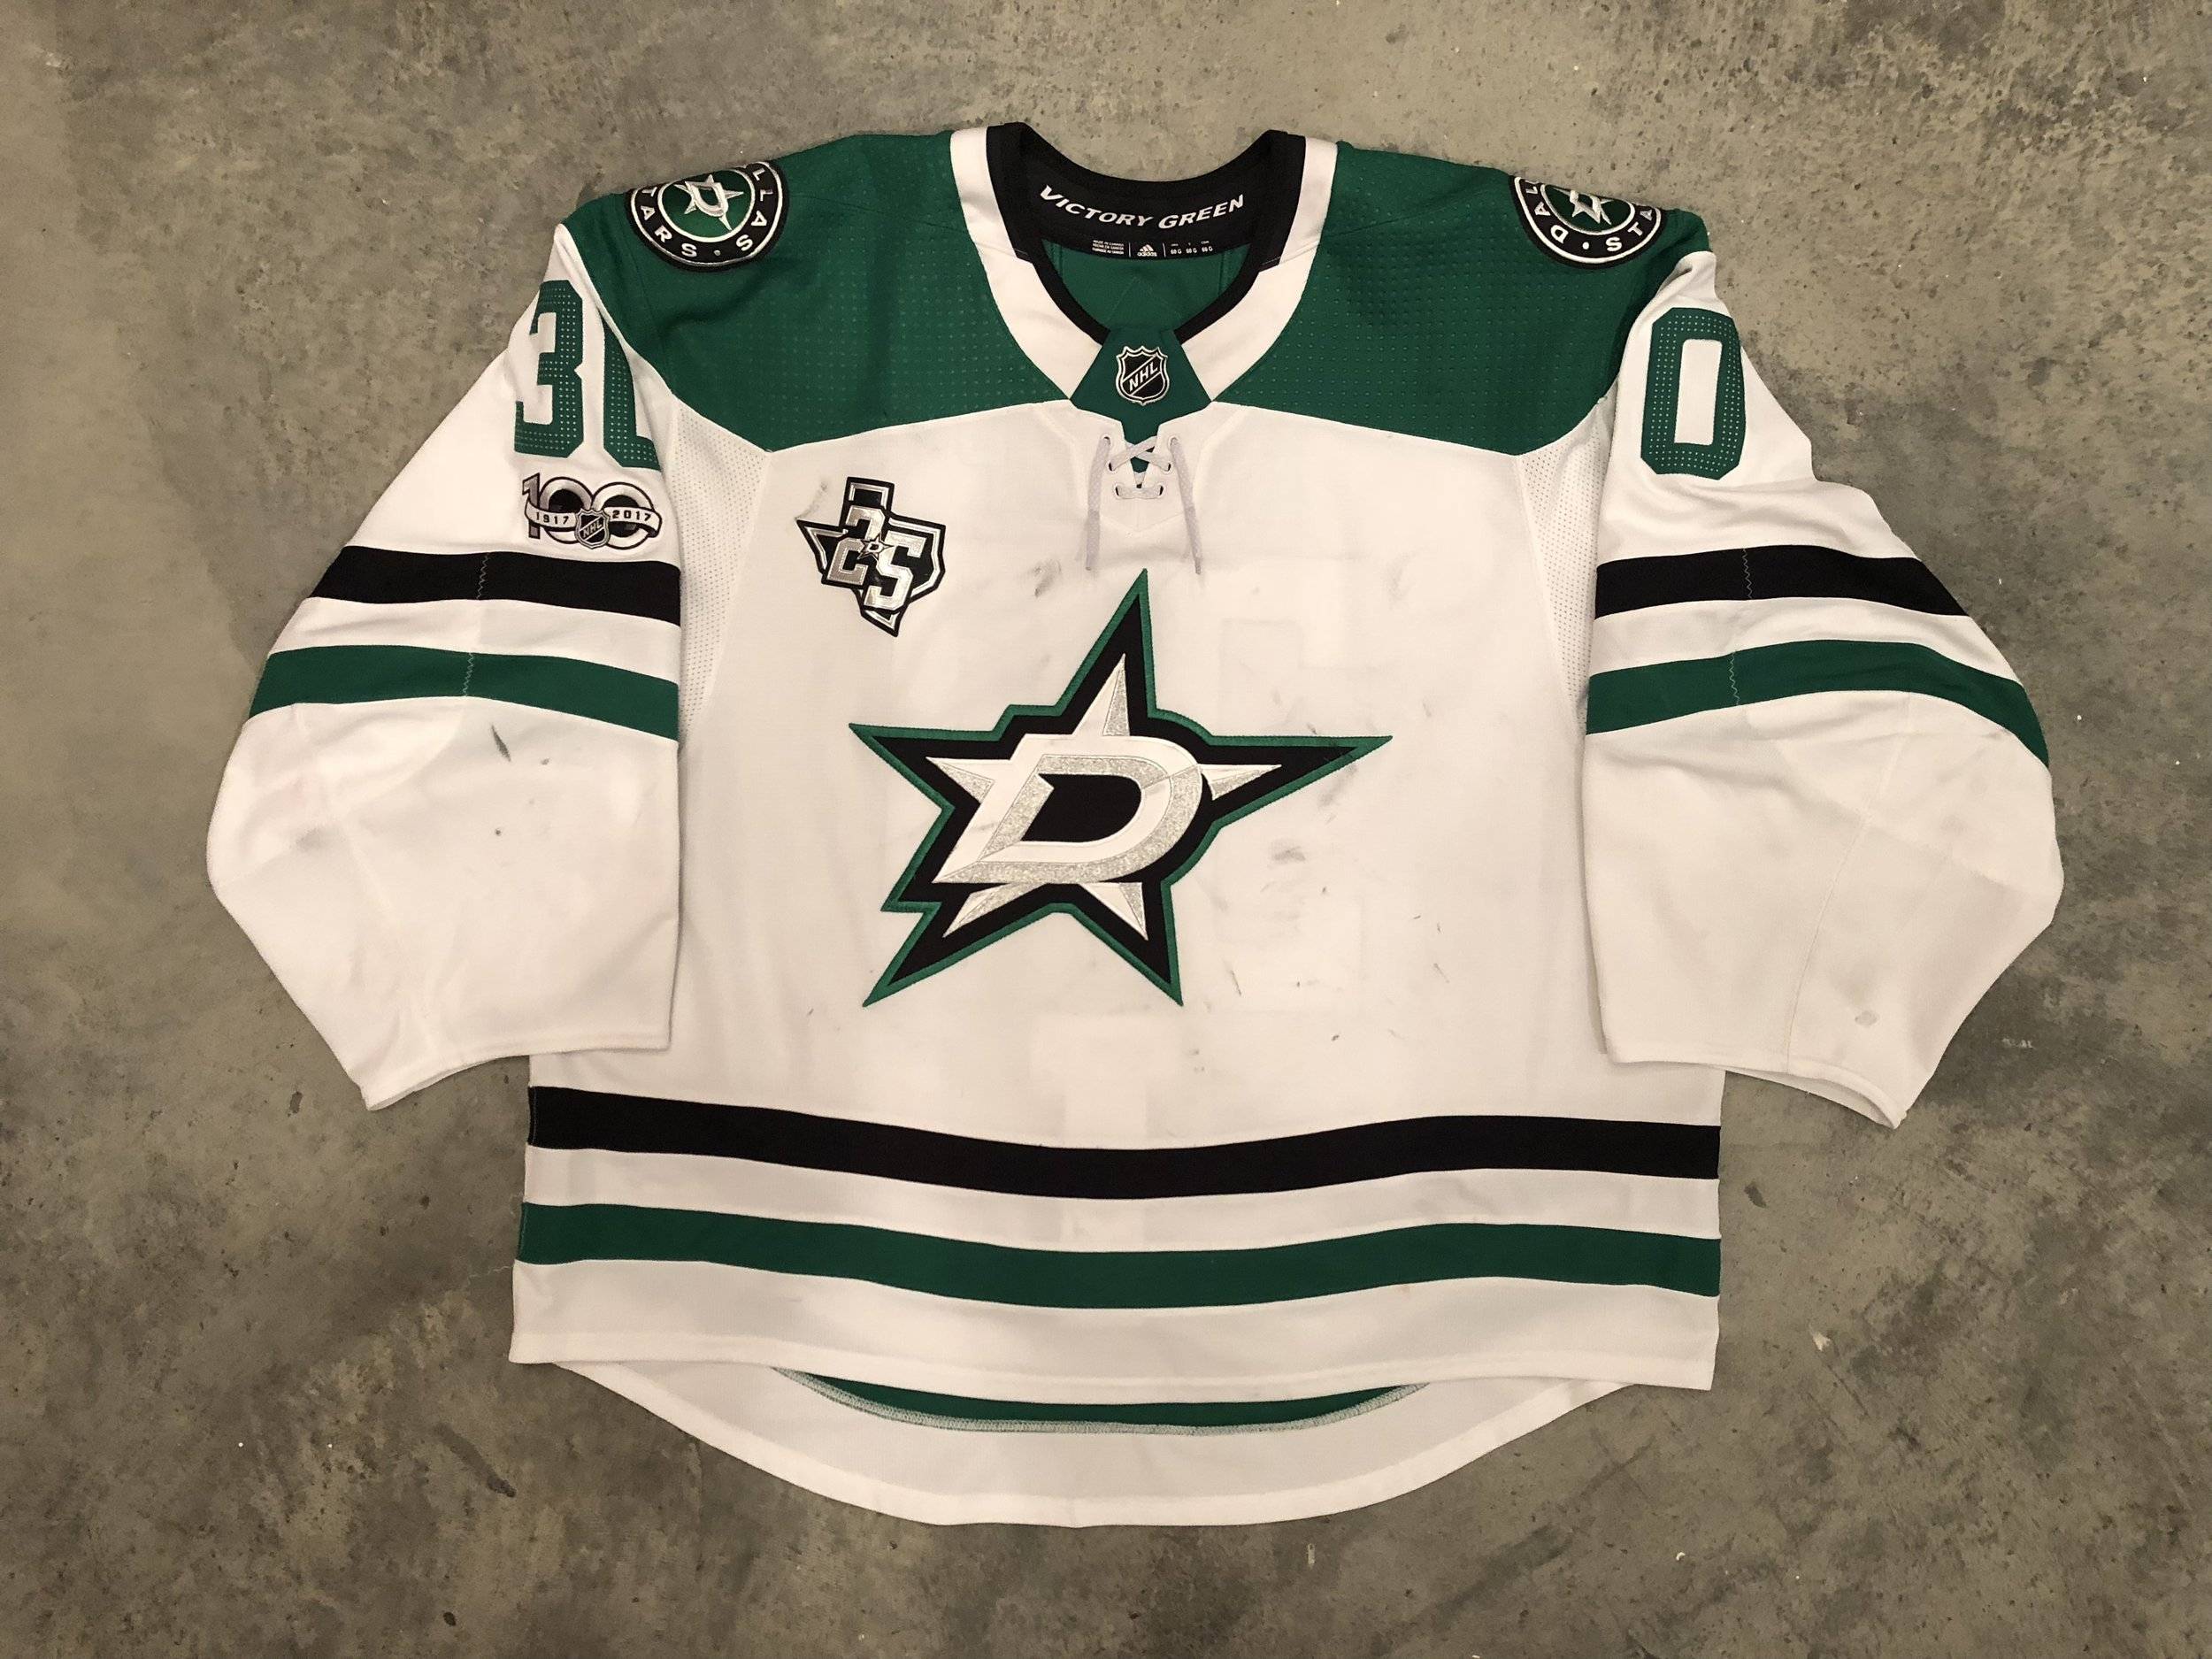 2017-18 Ben Bishop game worn road jersey with the Stars 25th anniversary and NHL centennial patches